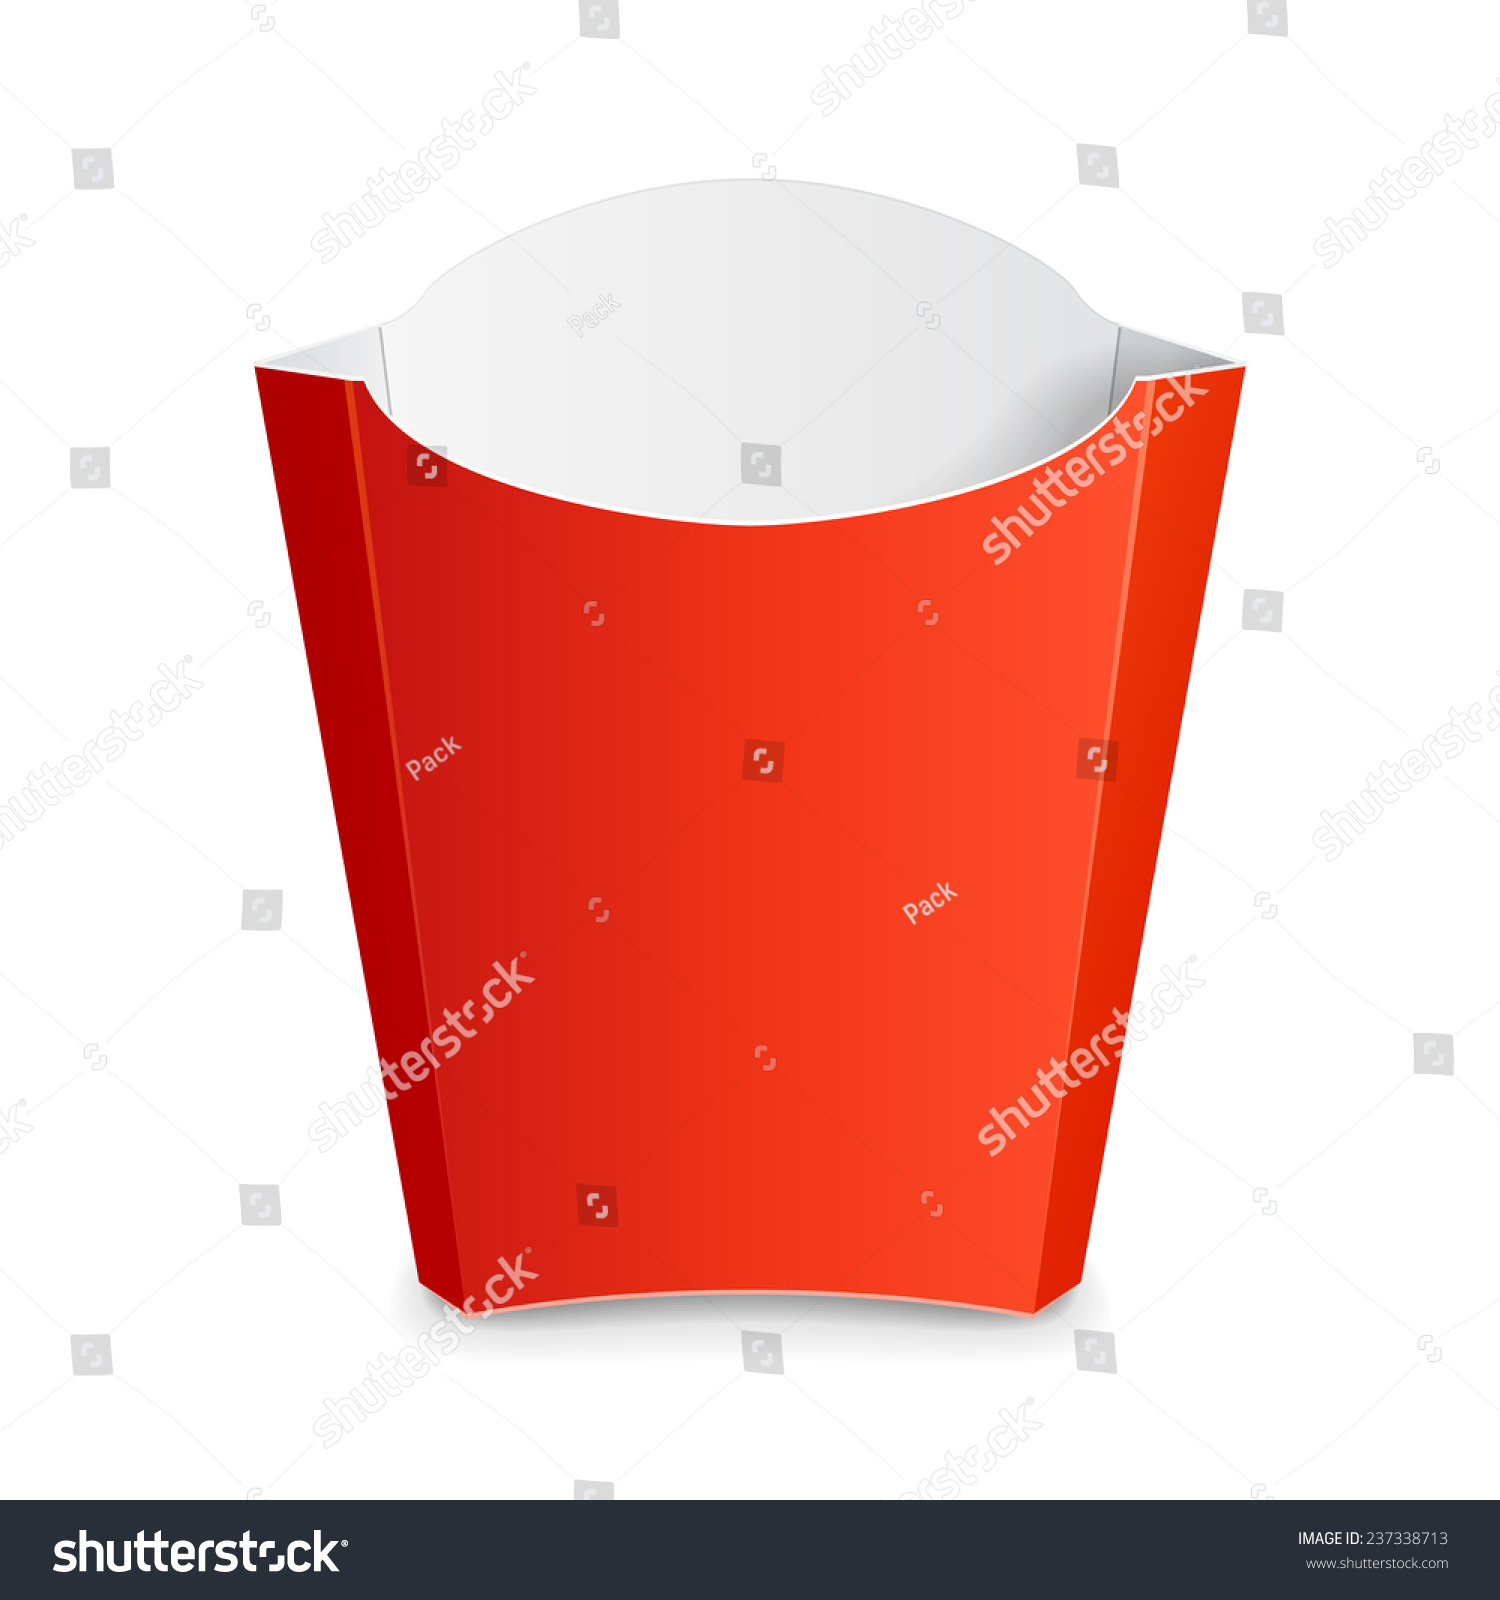 french fries packaging template - french fries red paper box on stock vector 237338713